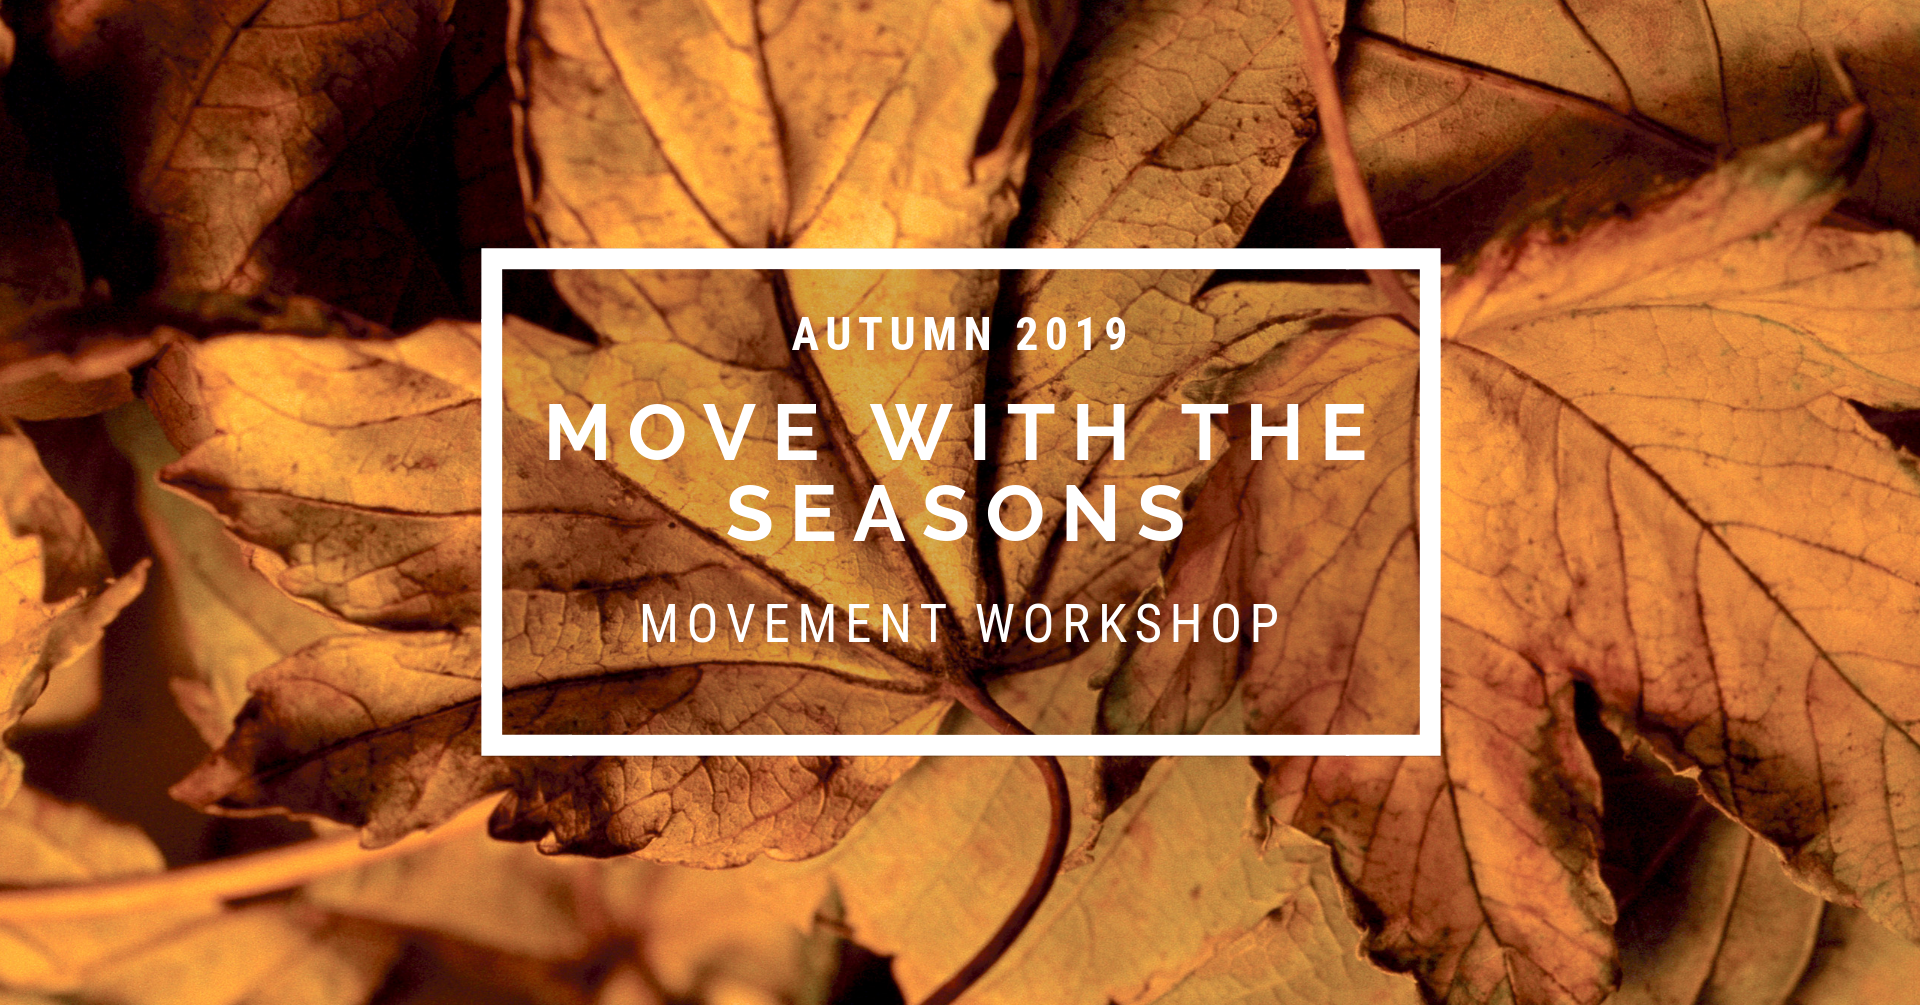 Autumn Event - Autumn practice highlights transition and balance, as our energy and focus starts to gently fall and shift inwards. We keep things mellow… we keep things moving. Join us to rediscover and embrace moving with the seasons.